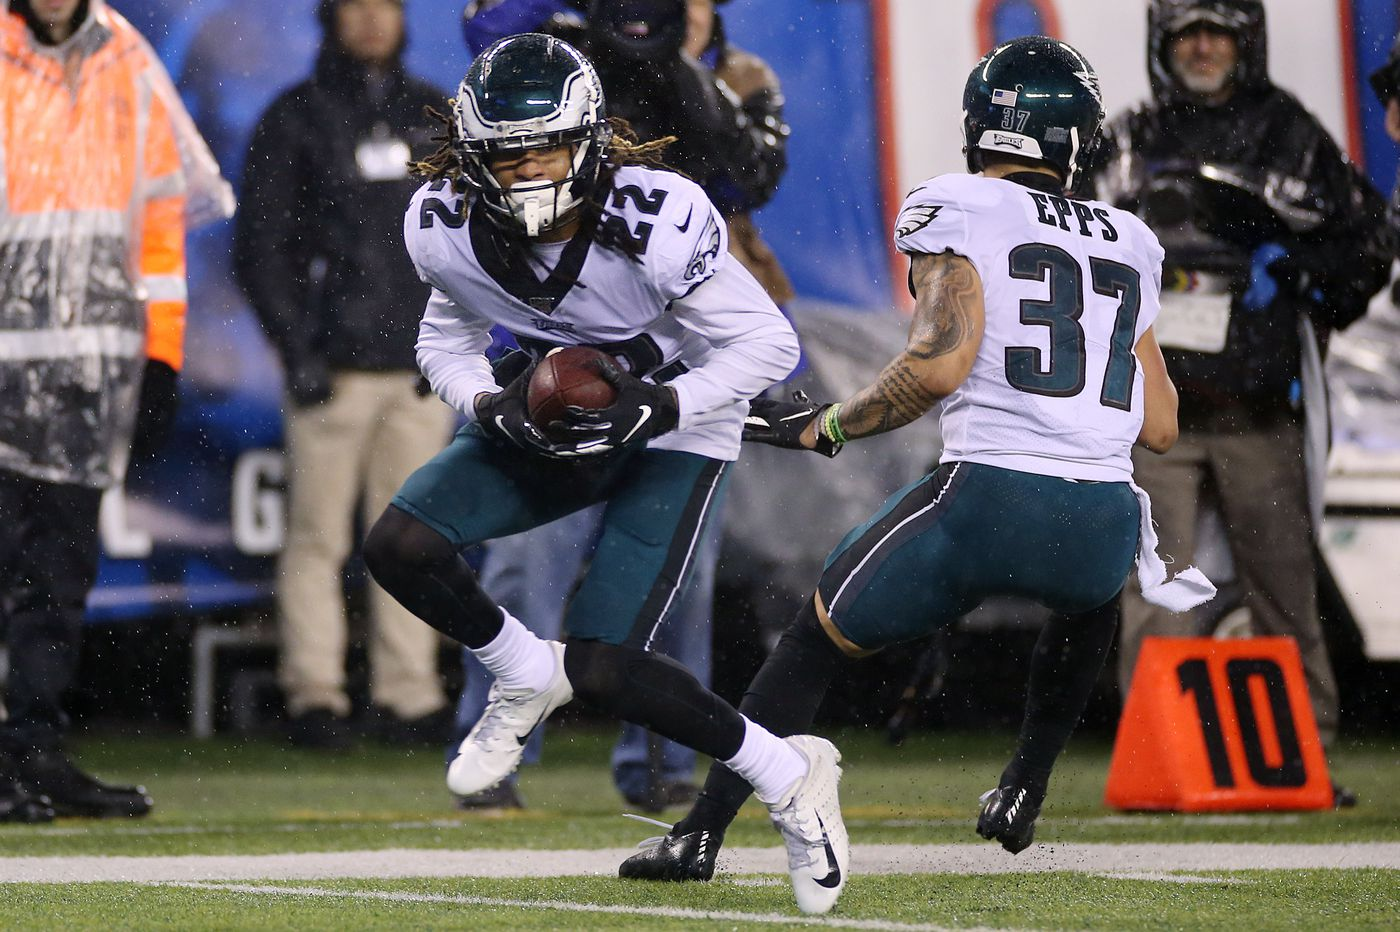 Eagles hoping to be smarter when it comes to injury-prone players in free agency and the draft